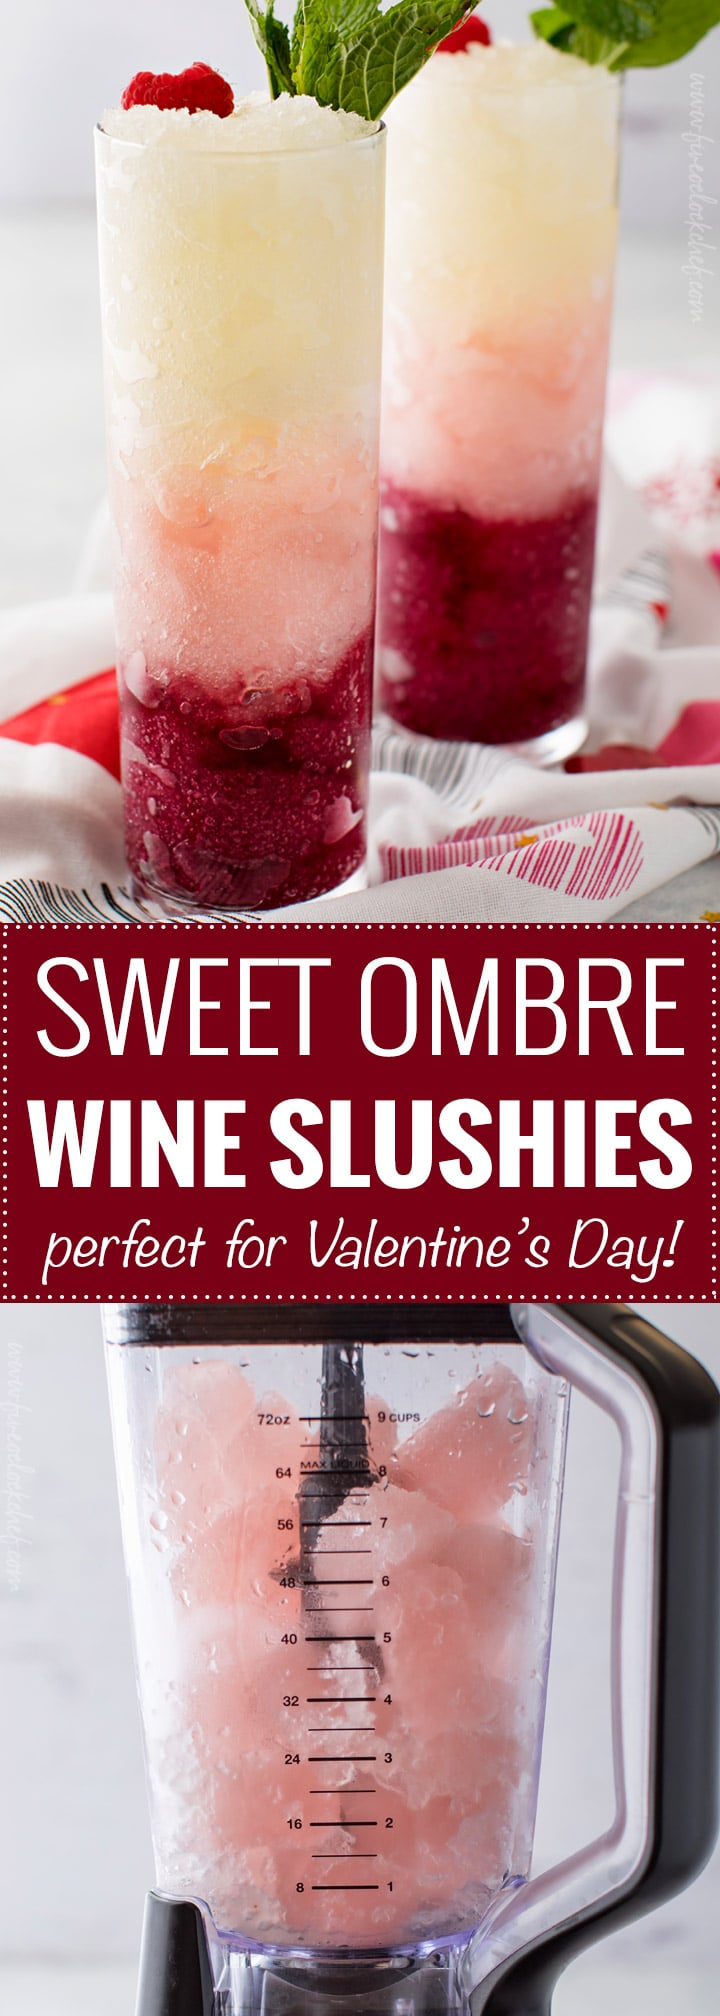 Sweet Ombre Wine Slushies | Three types of sweet wine are frozen into ice cubes, blended and layered to create a drink that's every bit as delicious as it is beautiful! | The 5 o'clock Chef | #slushie #slushy #slush #wine #ombre #valentinesday #frozendrink